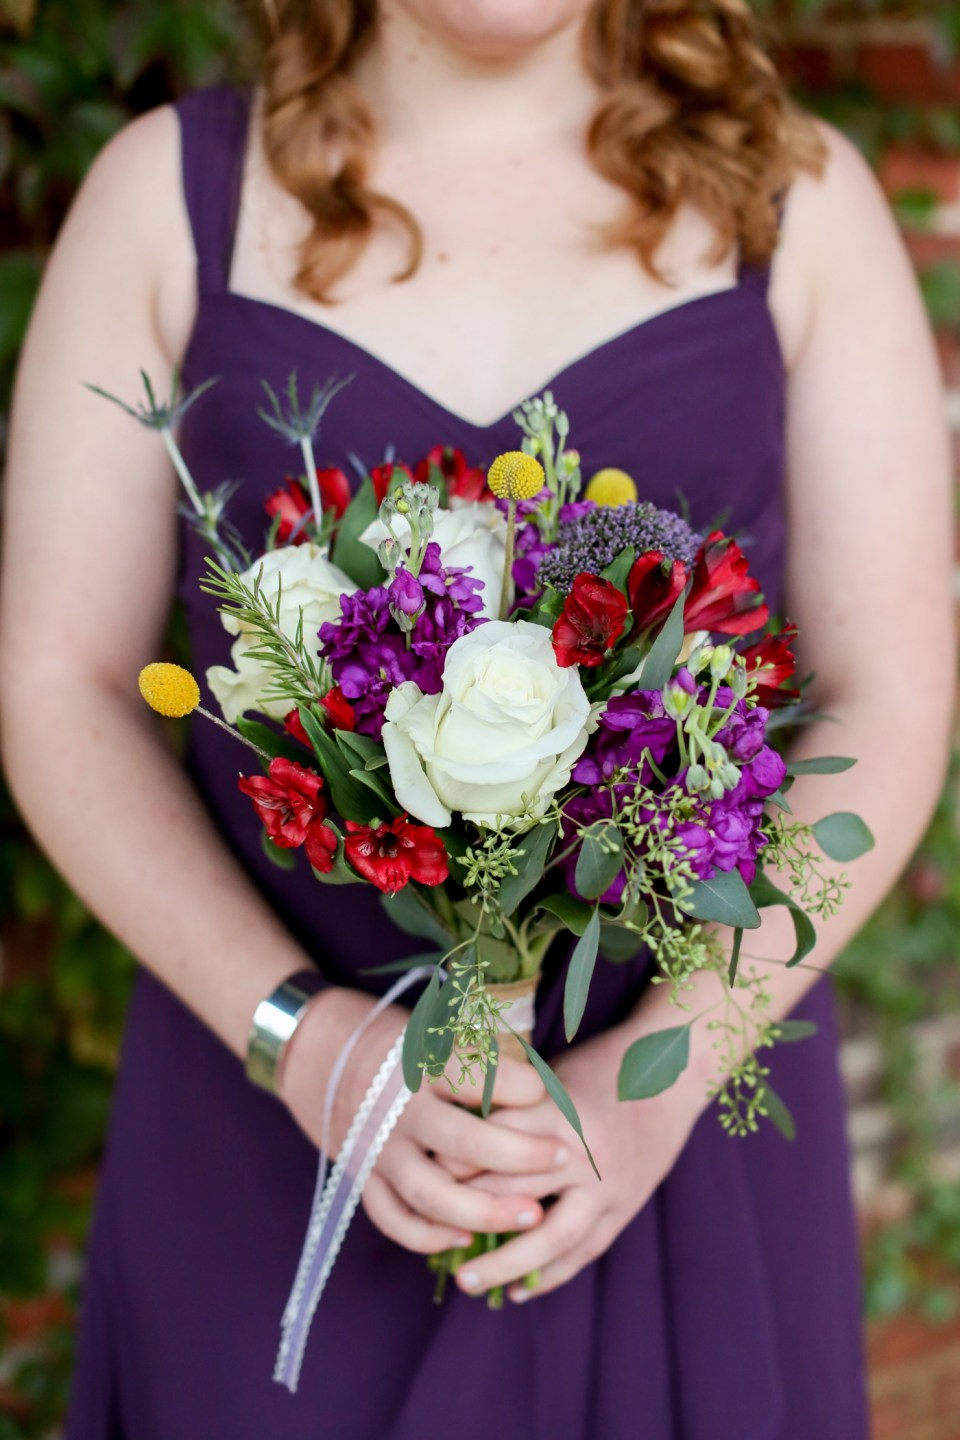 Fall-Wedding-Bouquet-Inspiration-Flowers-Bridal-Bridesmaids395